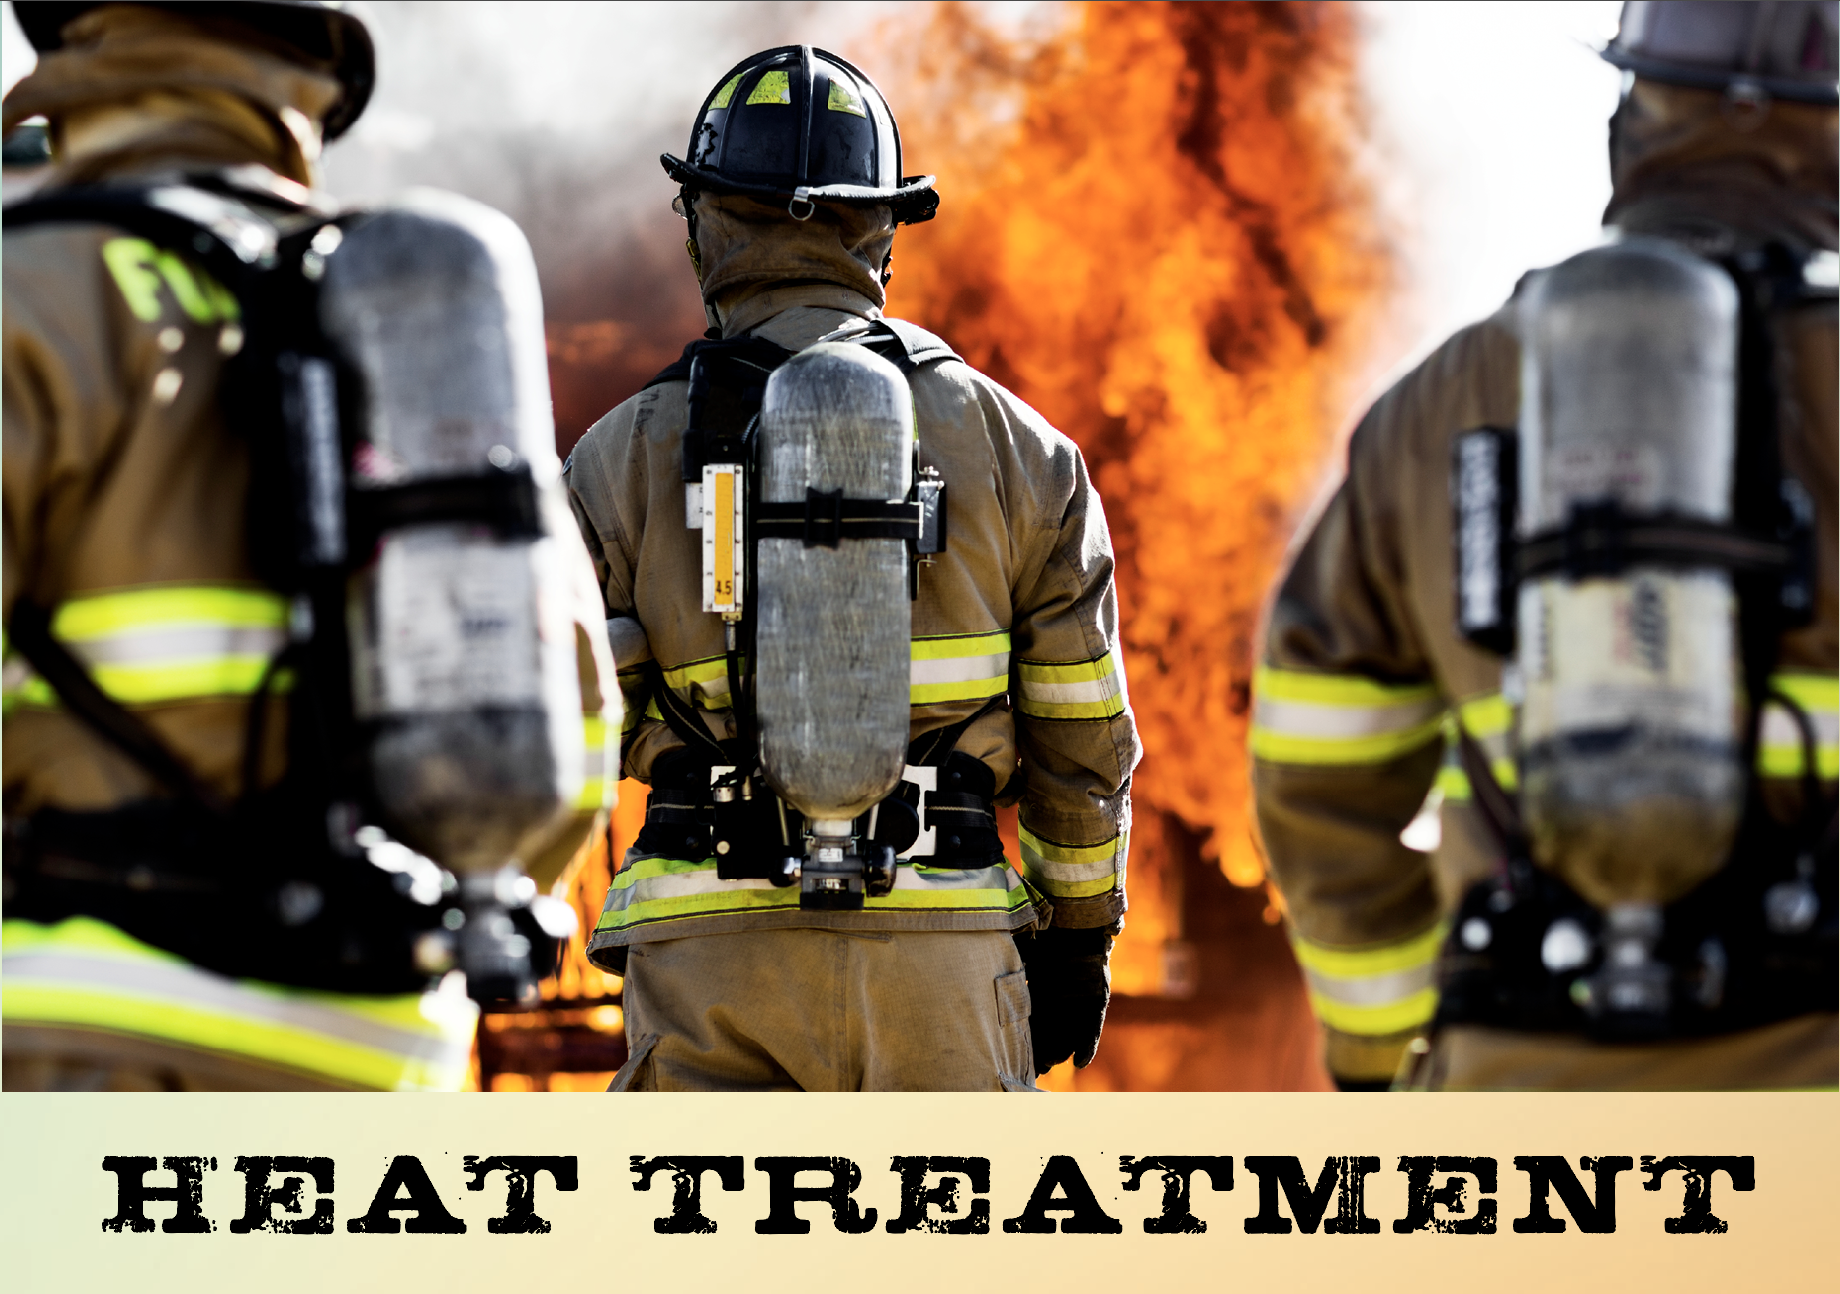 Heat Treatment; photo of firefighters